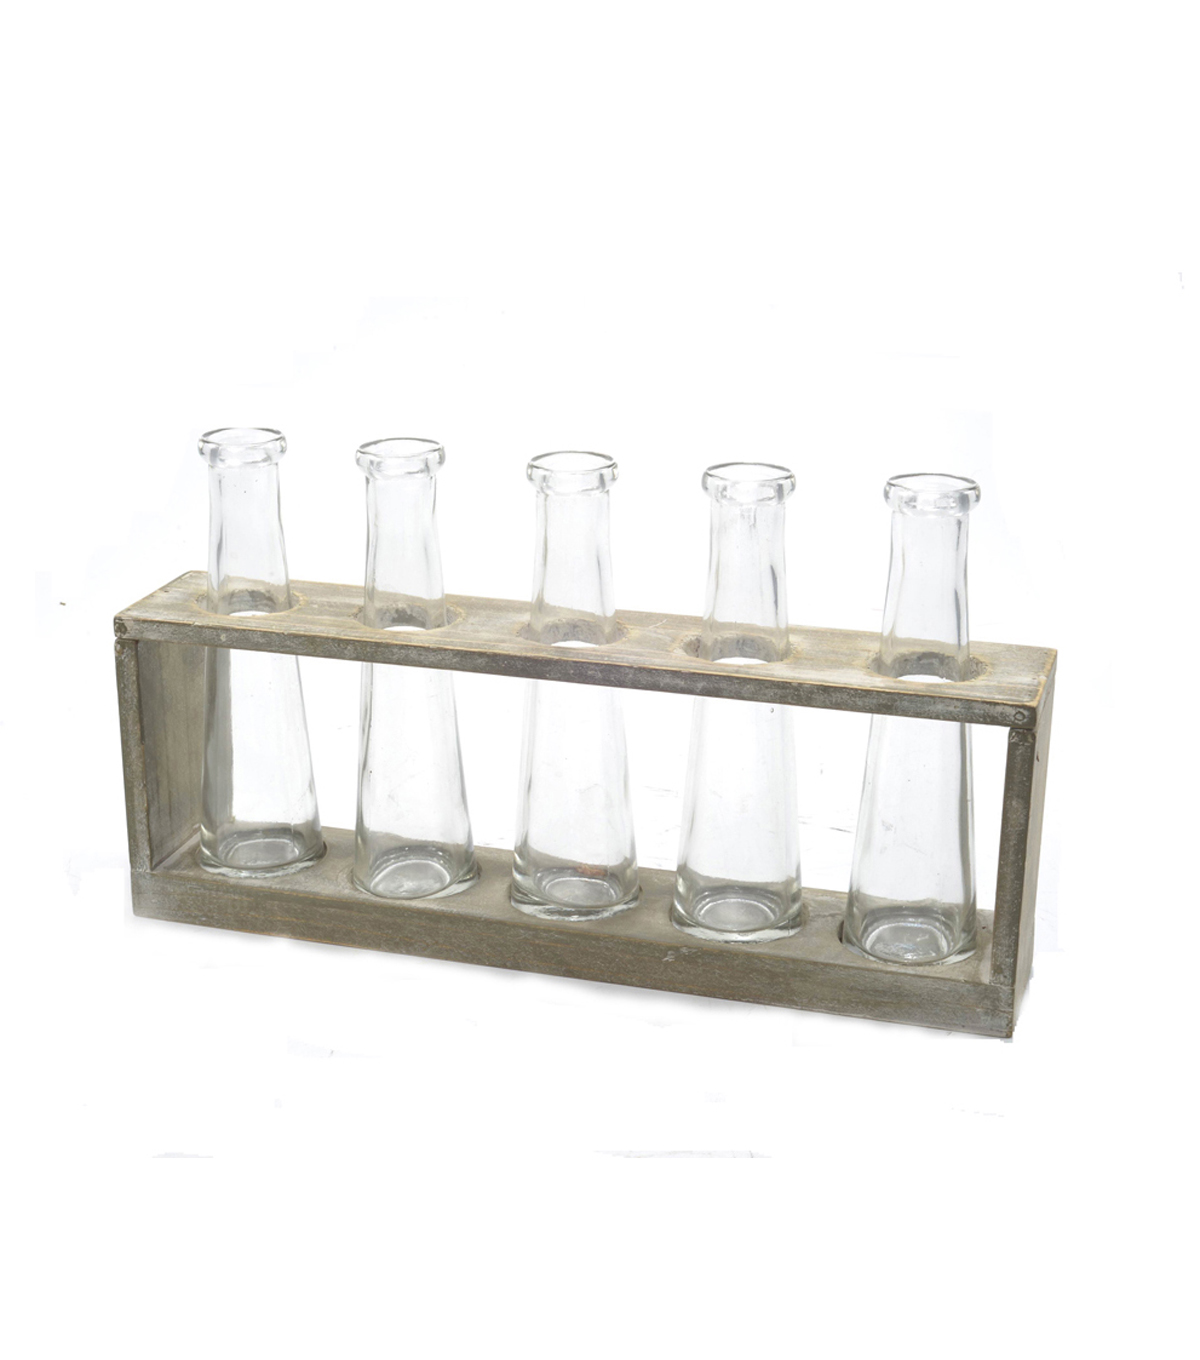 Bloom Room Wood Vase Holder With 5 Bottles